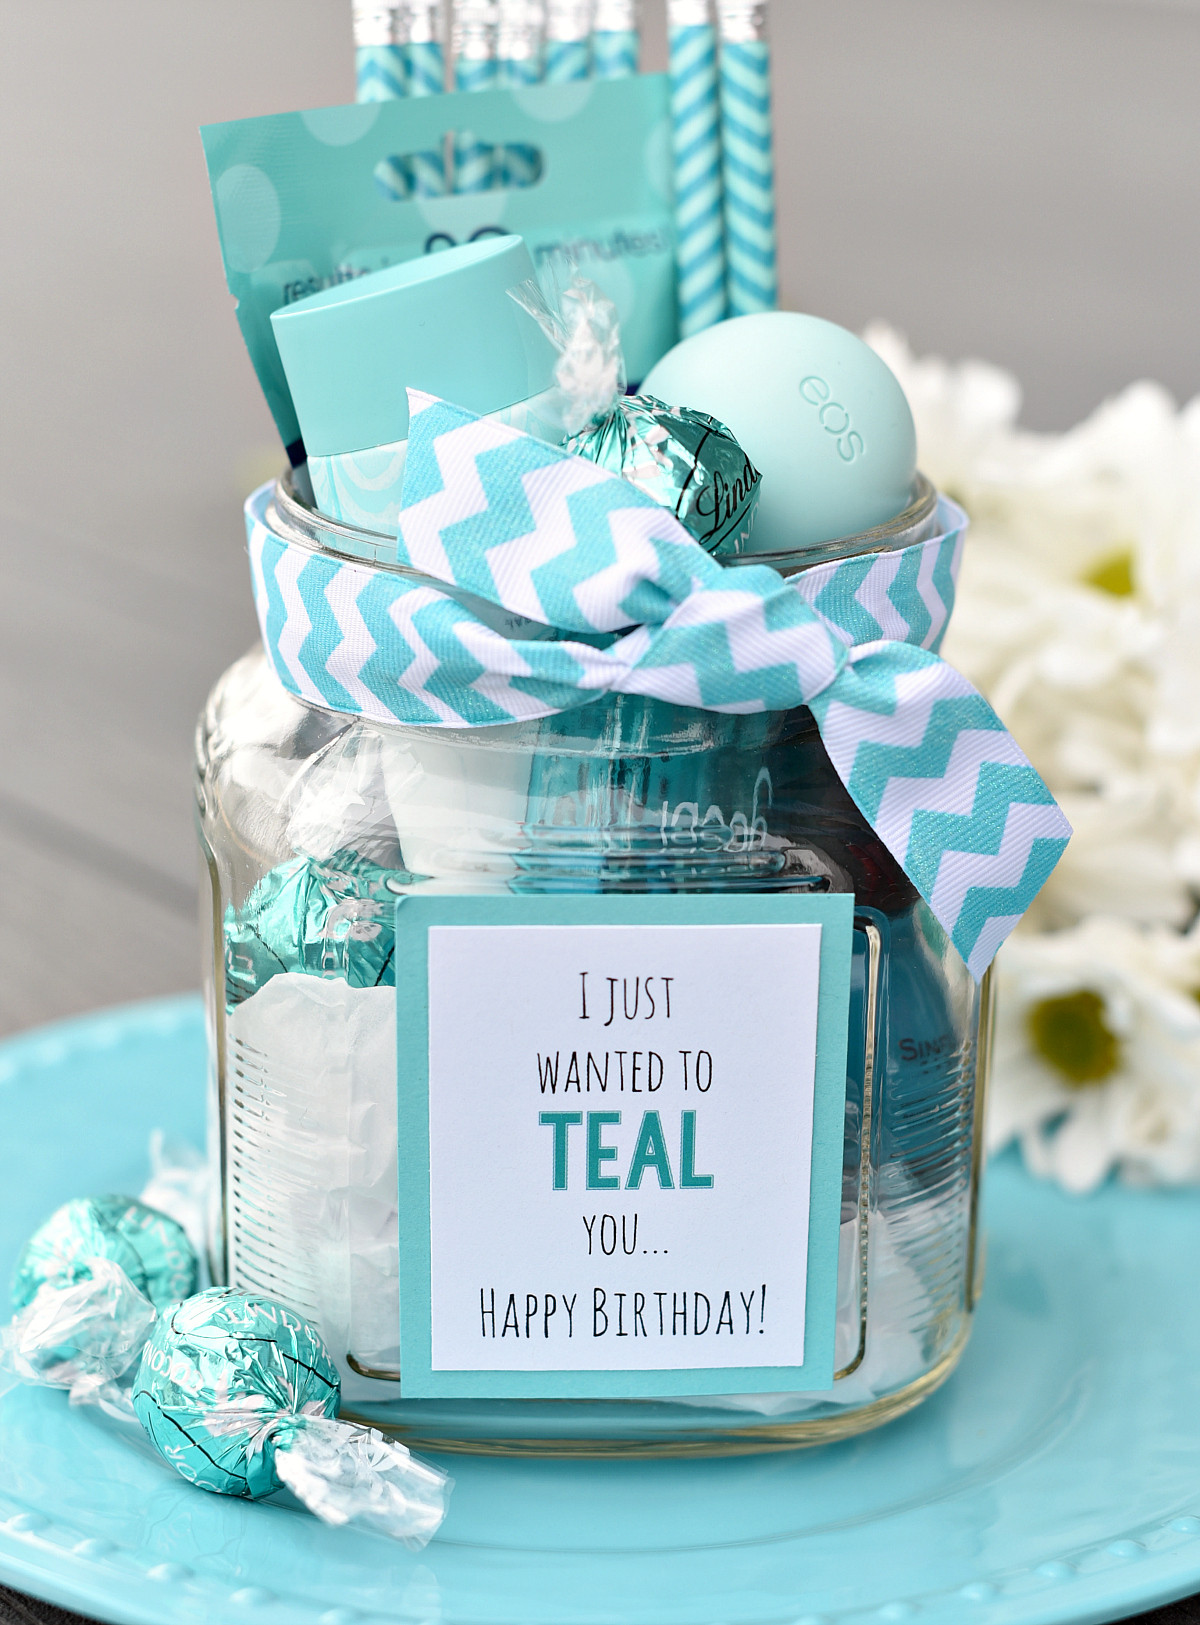 Best Birthday Gifts For Women  Teal Birthday Gift Idea for Friends – Fun Squared